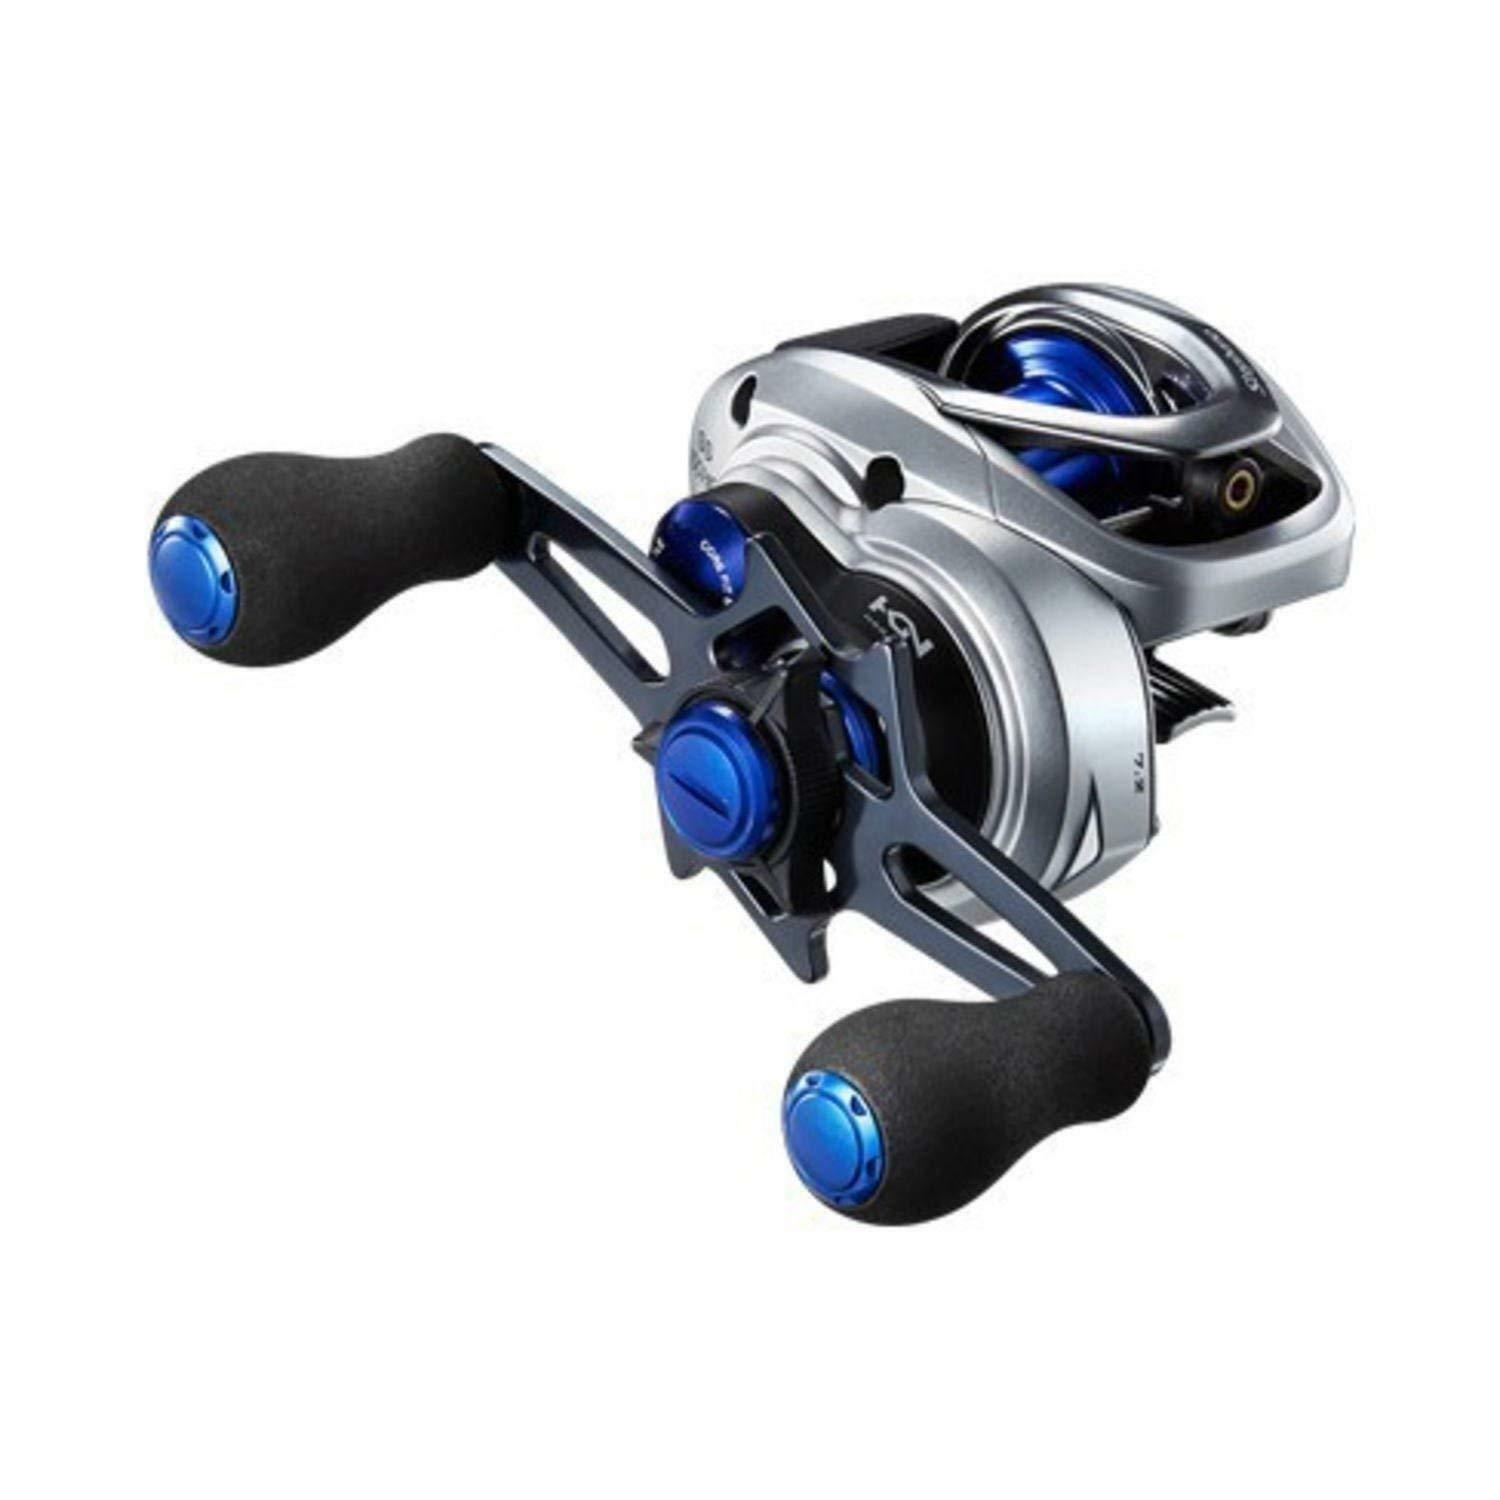 Shimano Baitcasting Reel 17 Stephano SS 100HG Right from japan【Brand New in Box】